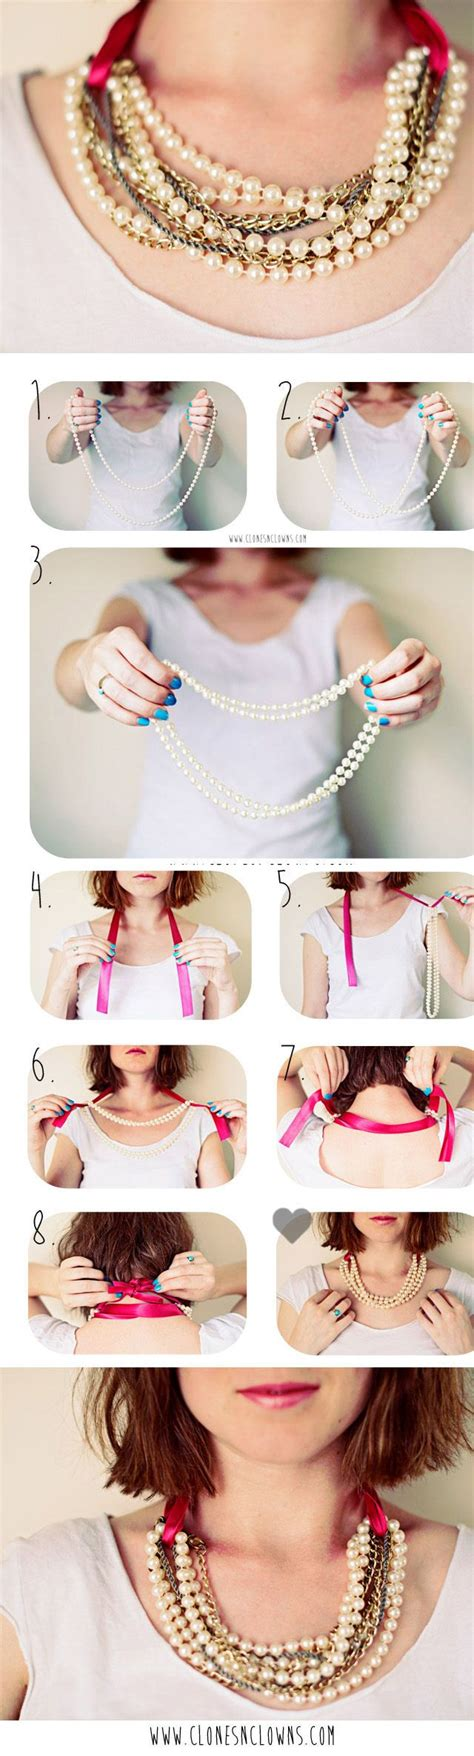 pearl diy diy pearl necklace in 3 minutes diy craft crafts craft